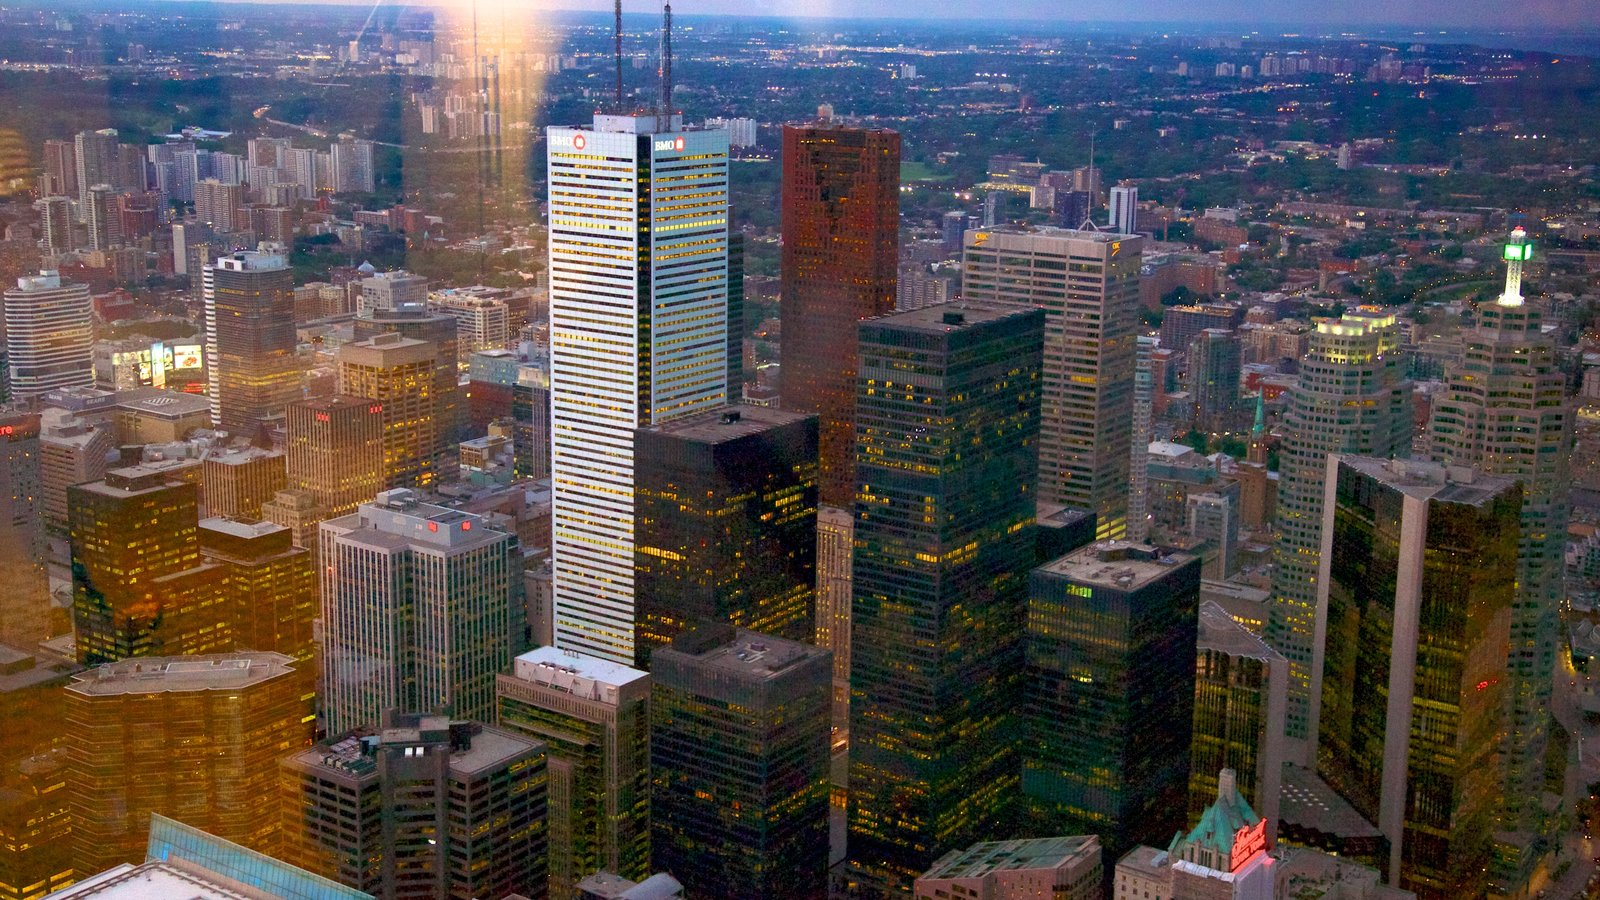 CN Tower showing a city, a skyscraper and central business district